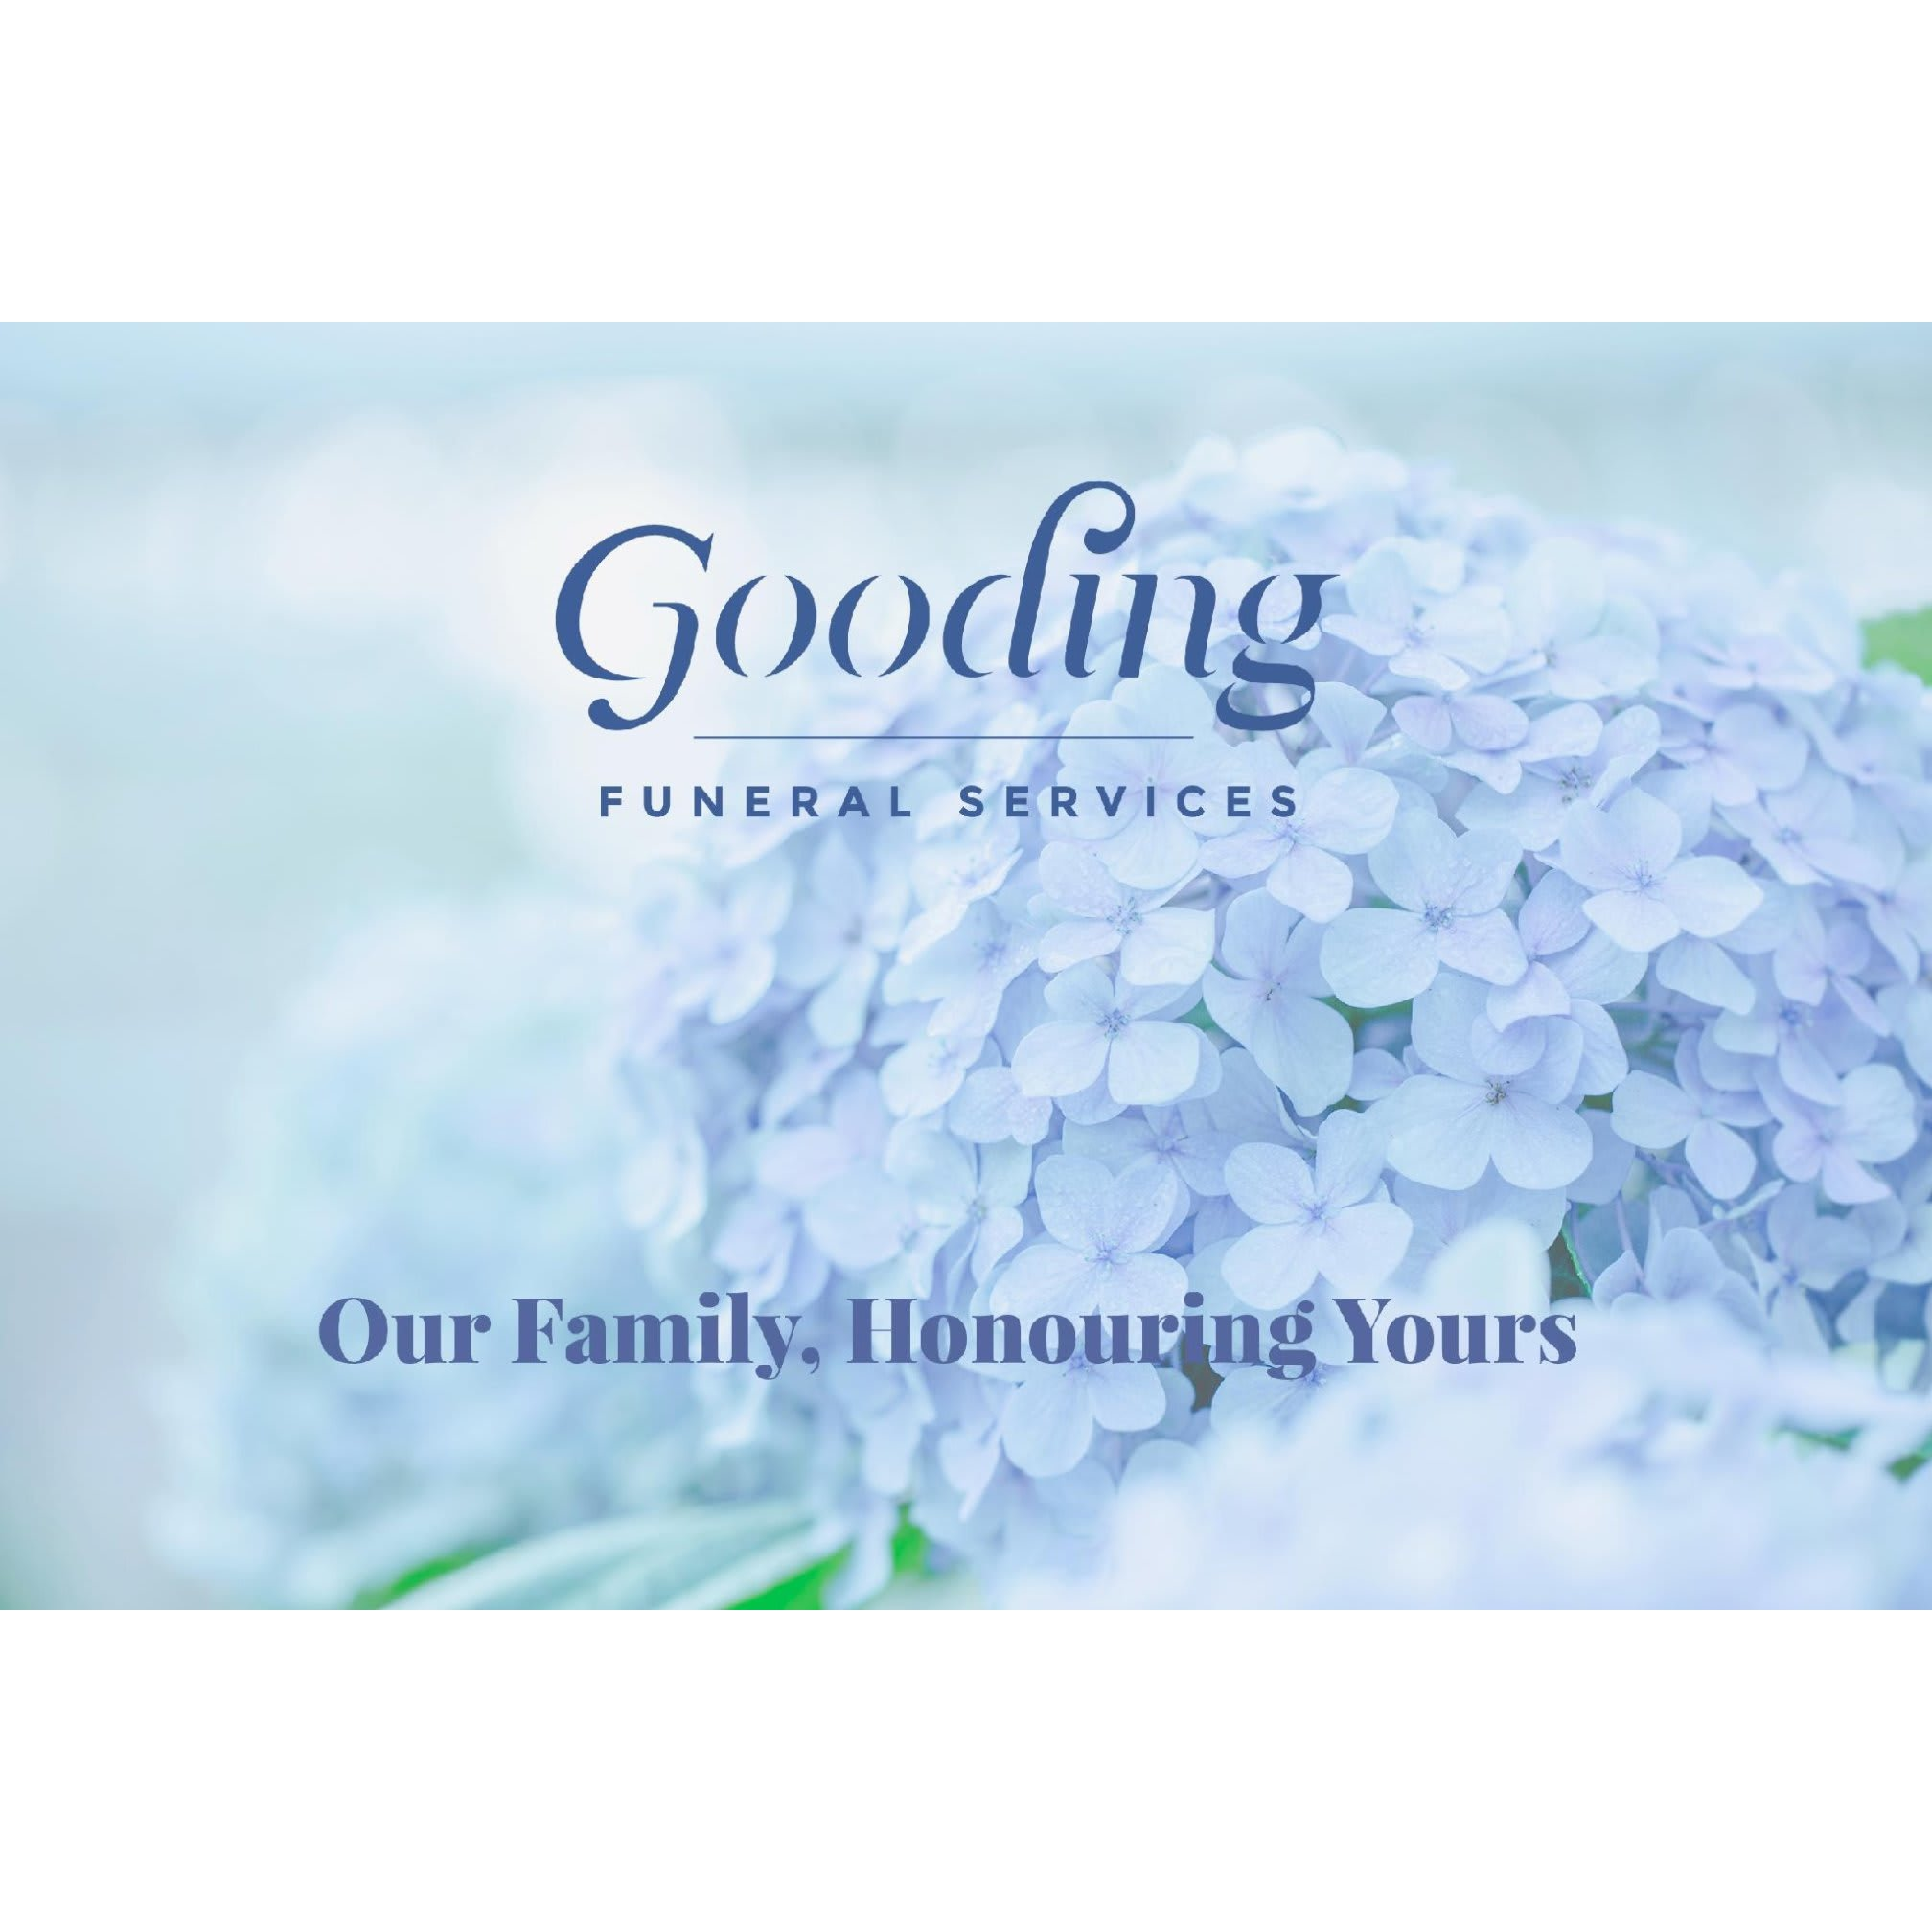 Gooding Funeral Services - Leeds, West Yorkshire LS7 4HE - 01132 107998 | ShowMeLocal.com